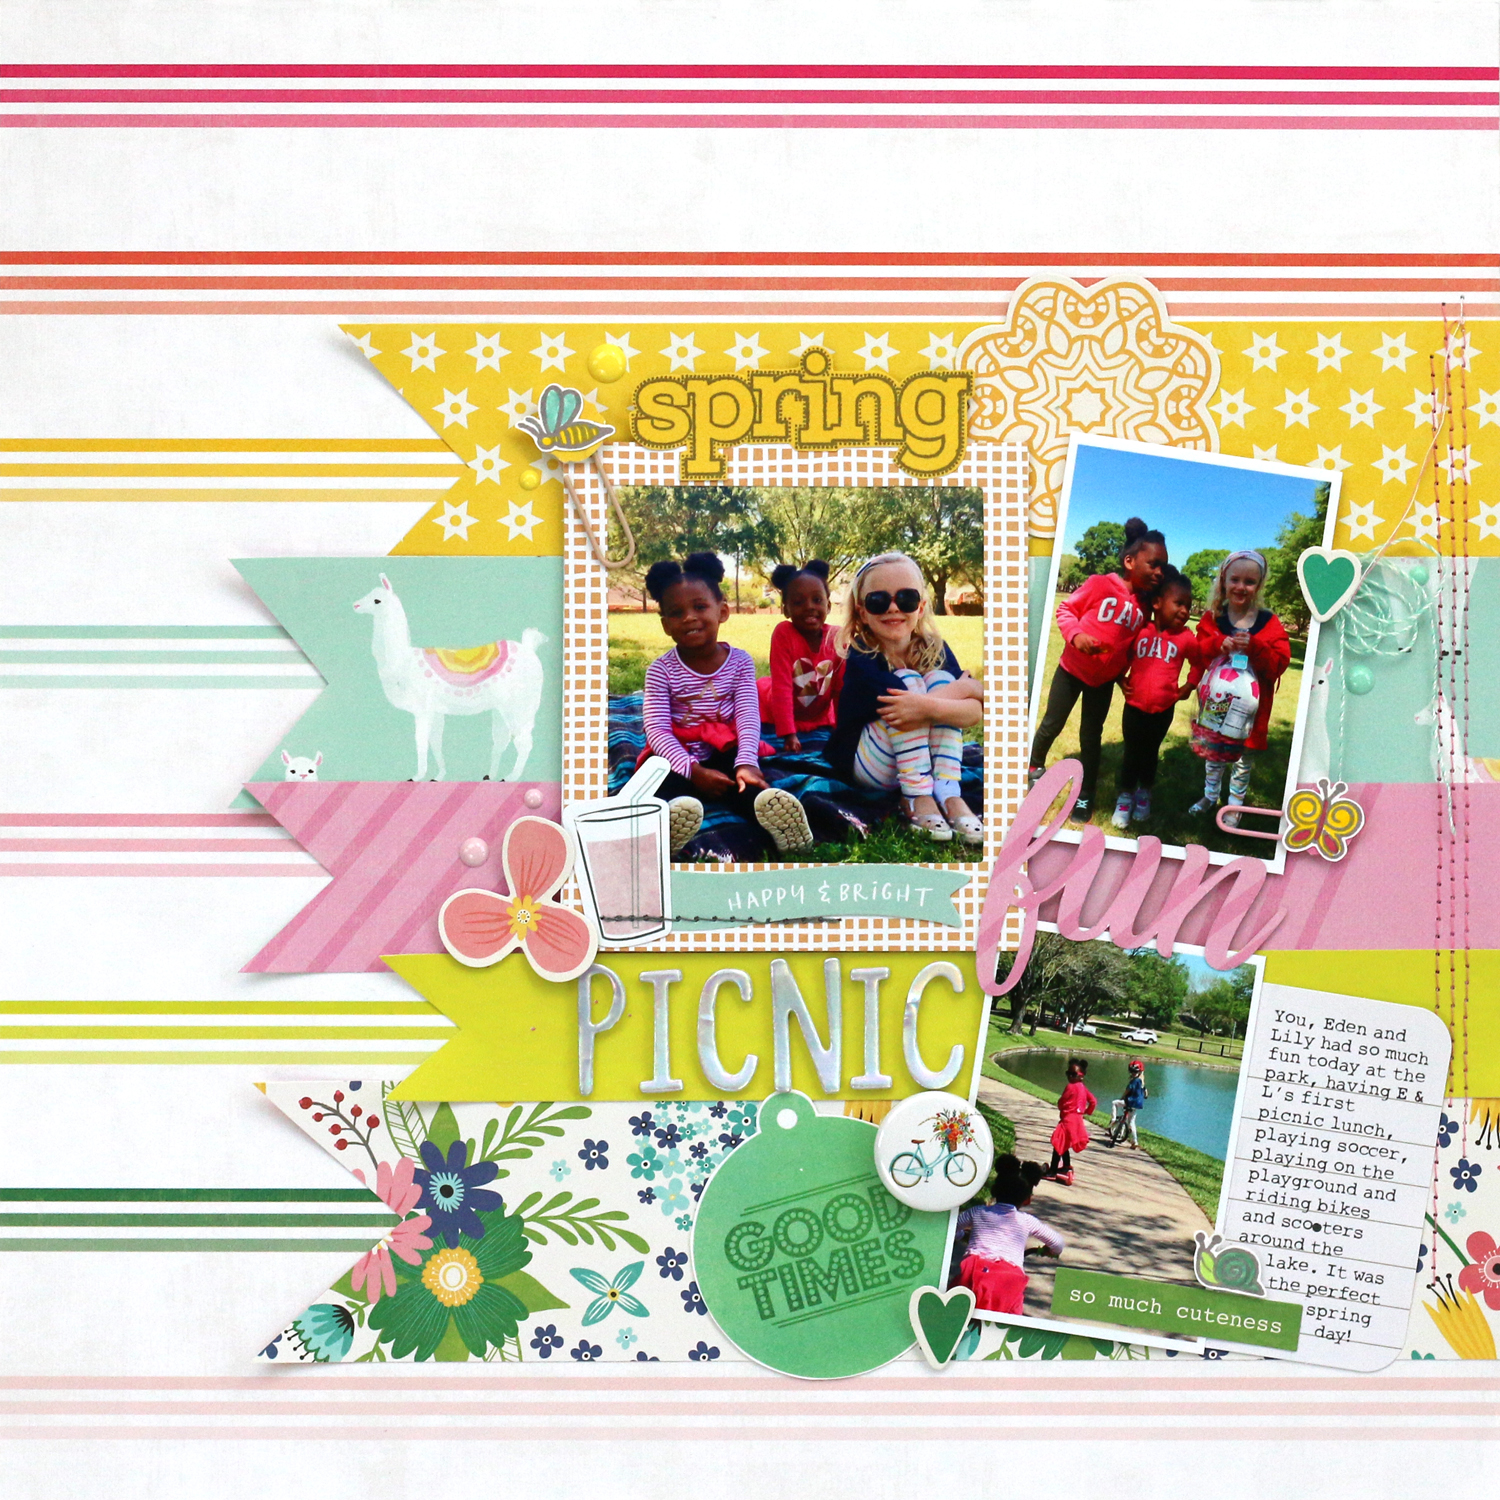 SCTDelivered_Spring2019Kit_MeghannAndrew_Picnic_01